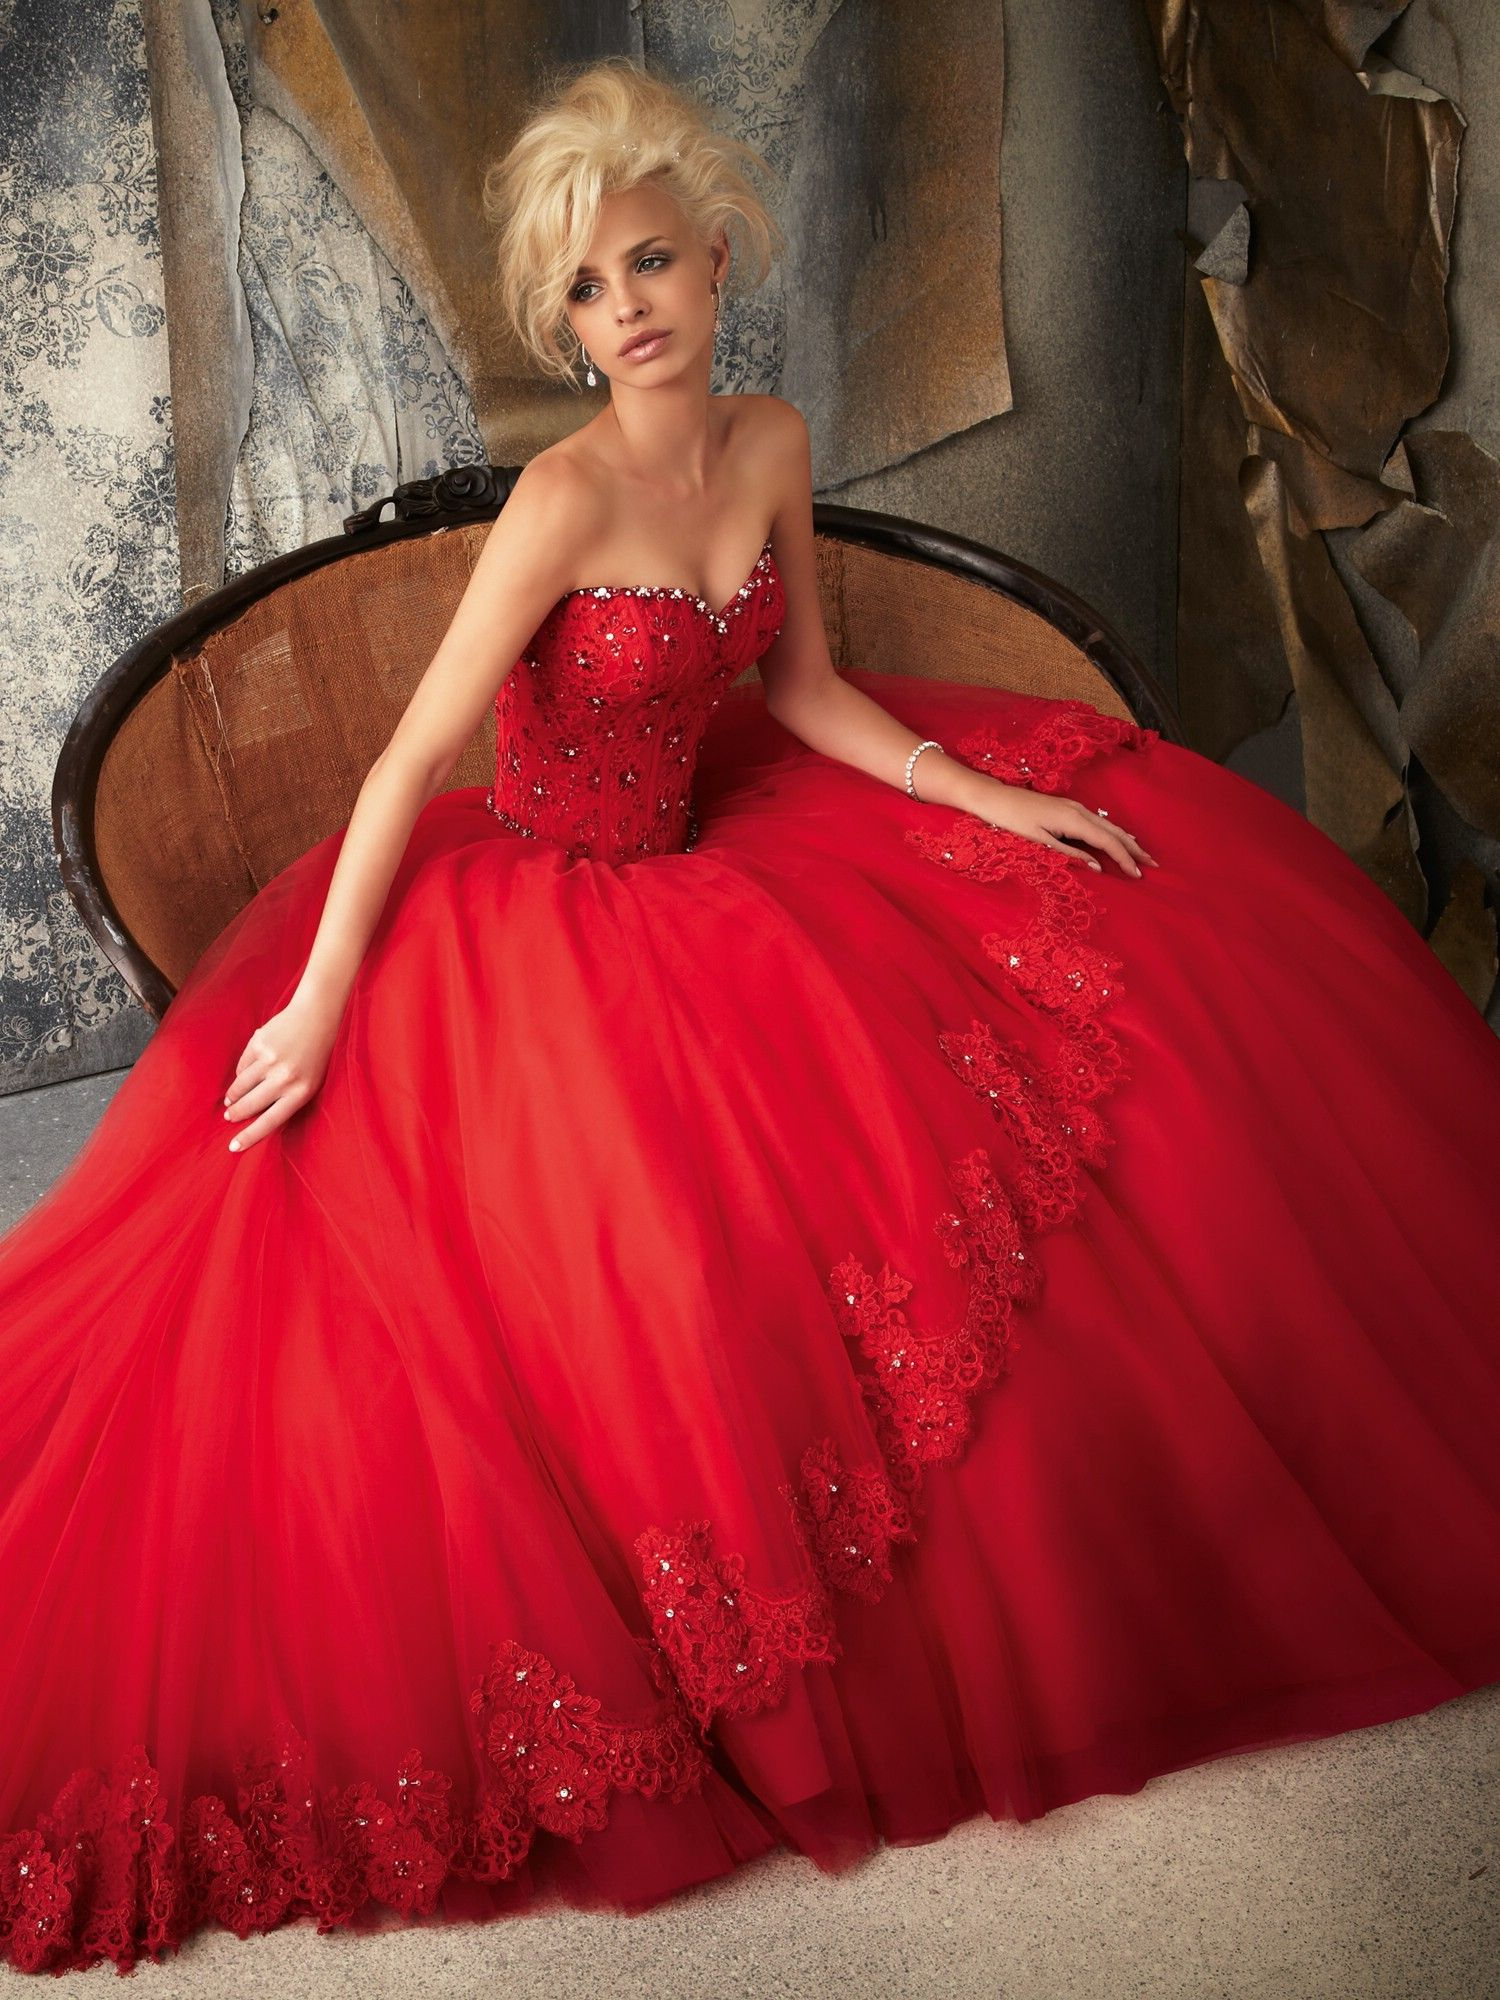 M co red dress qualified